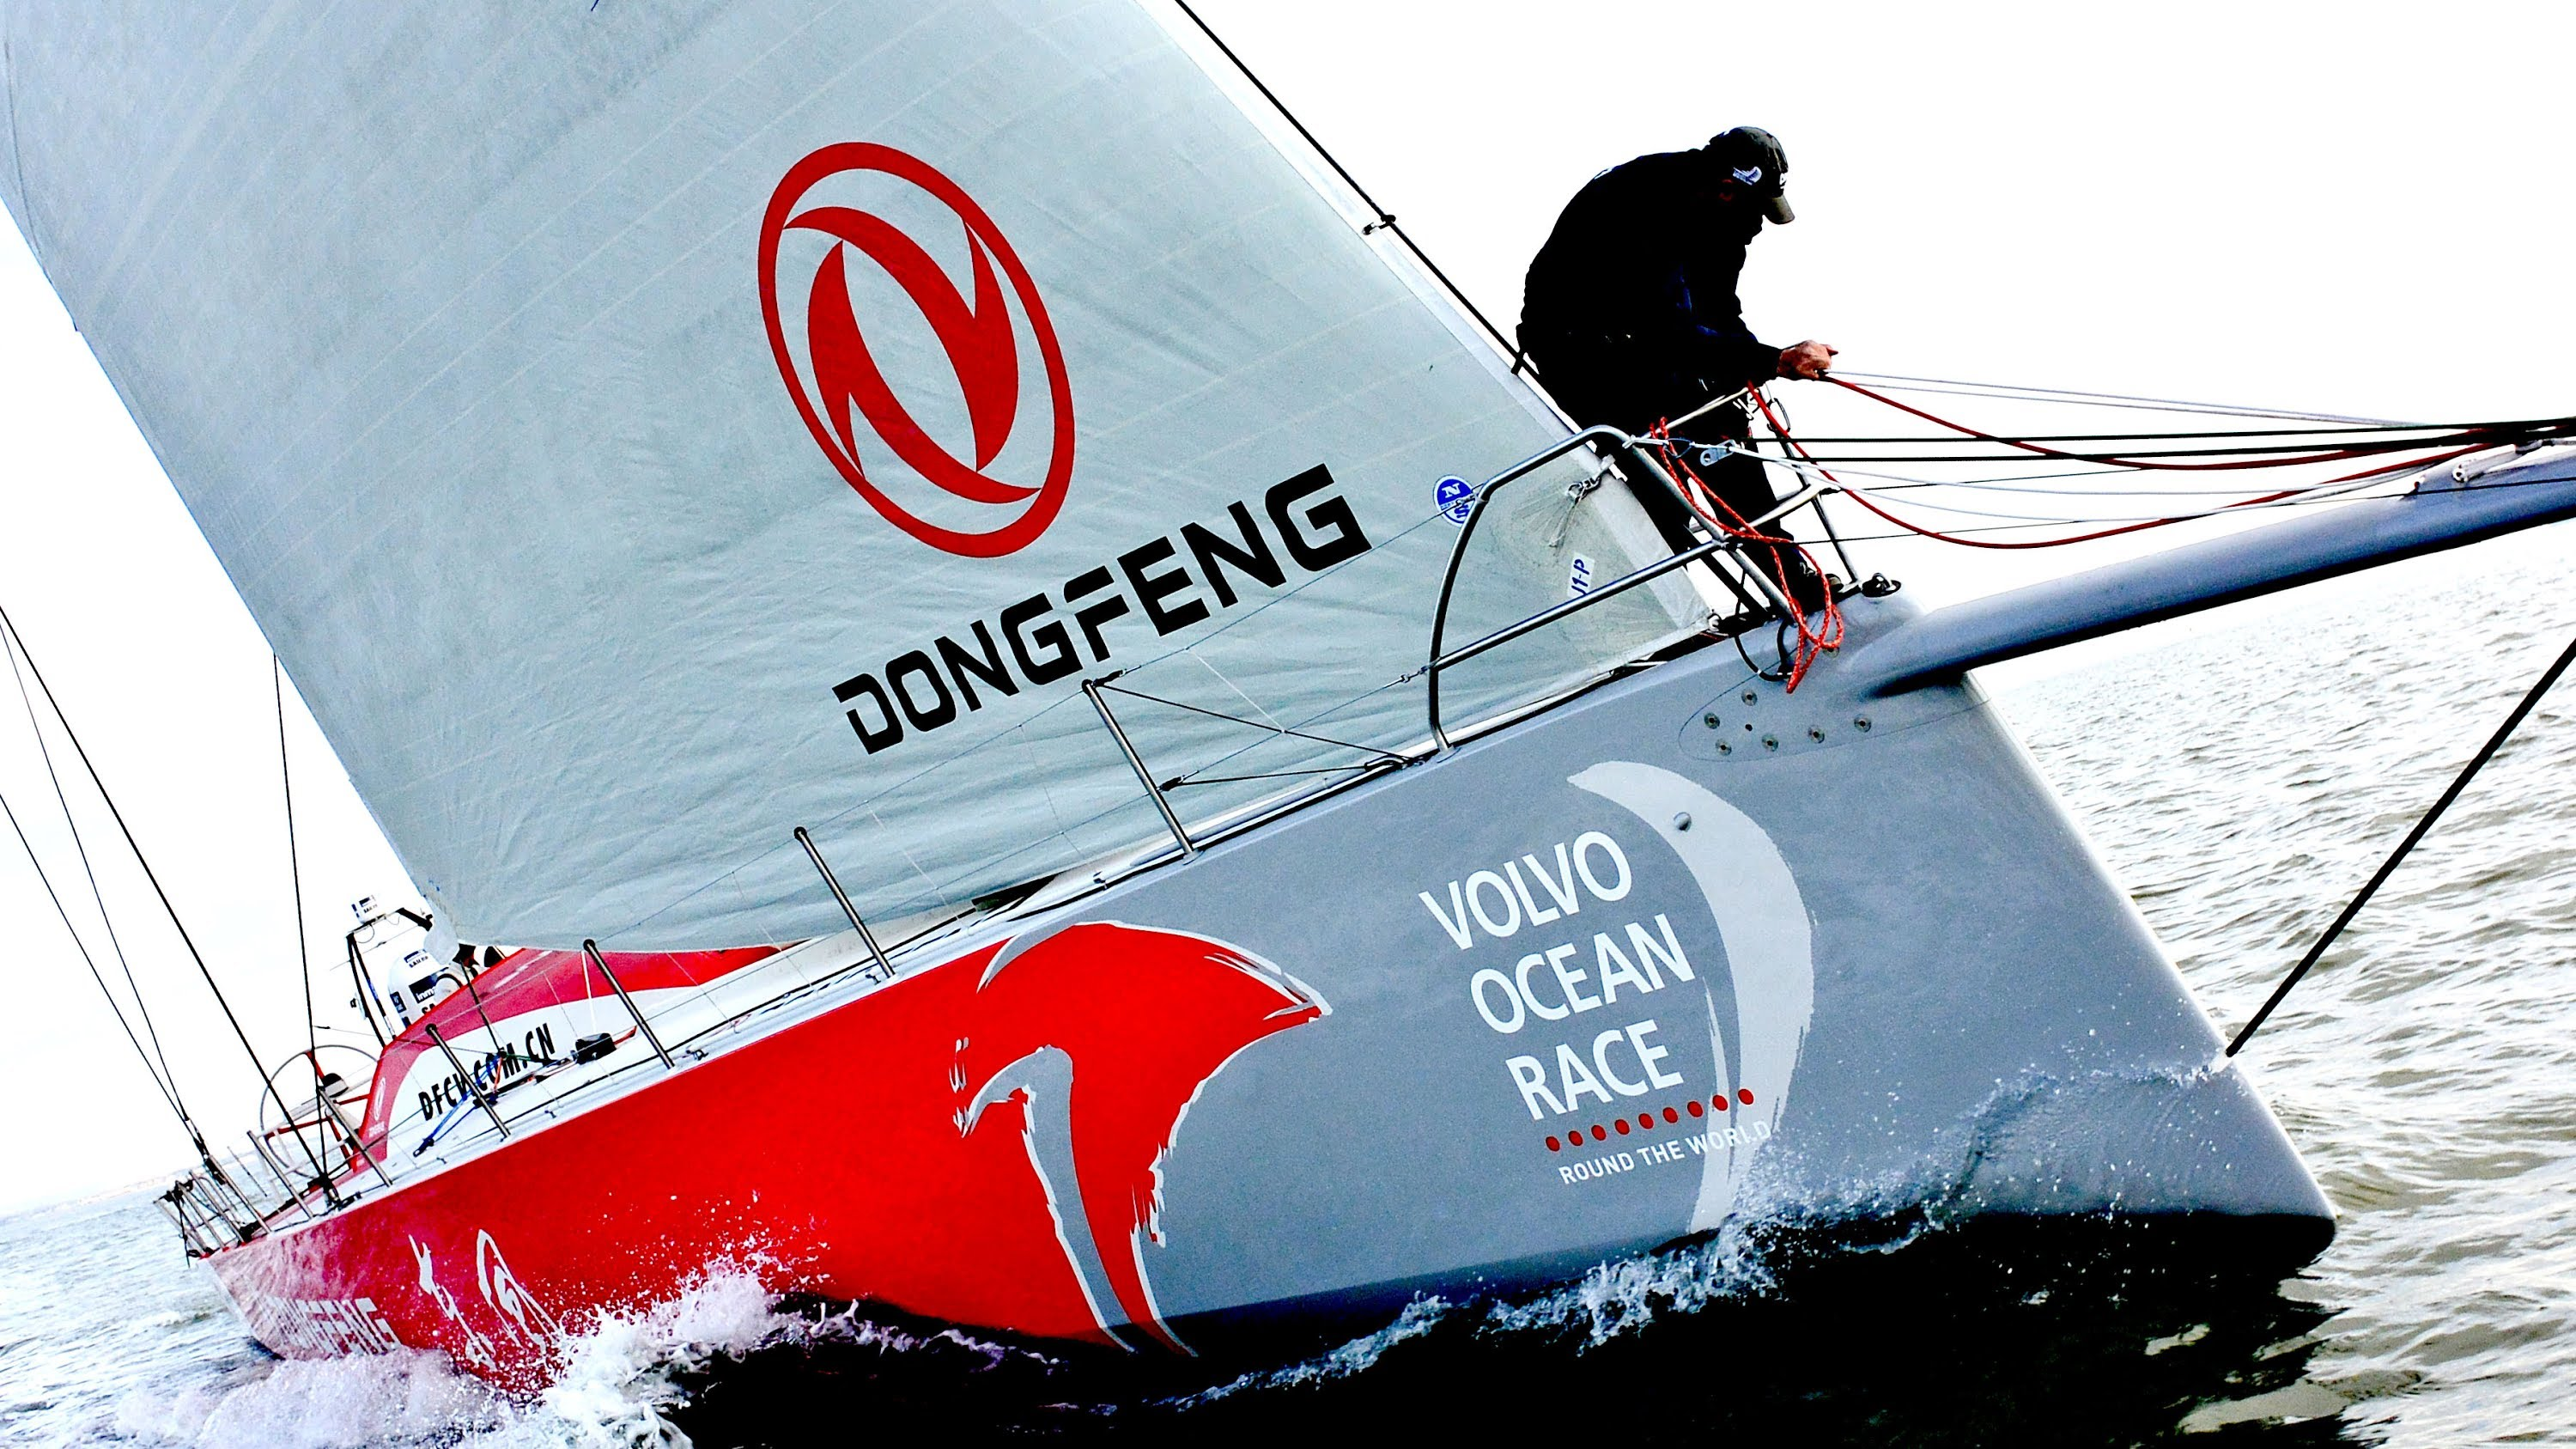 VO65 Donfeng Test Drive